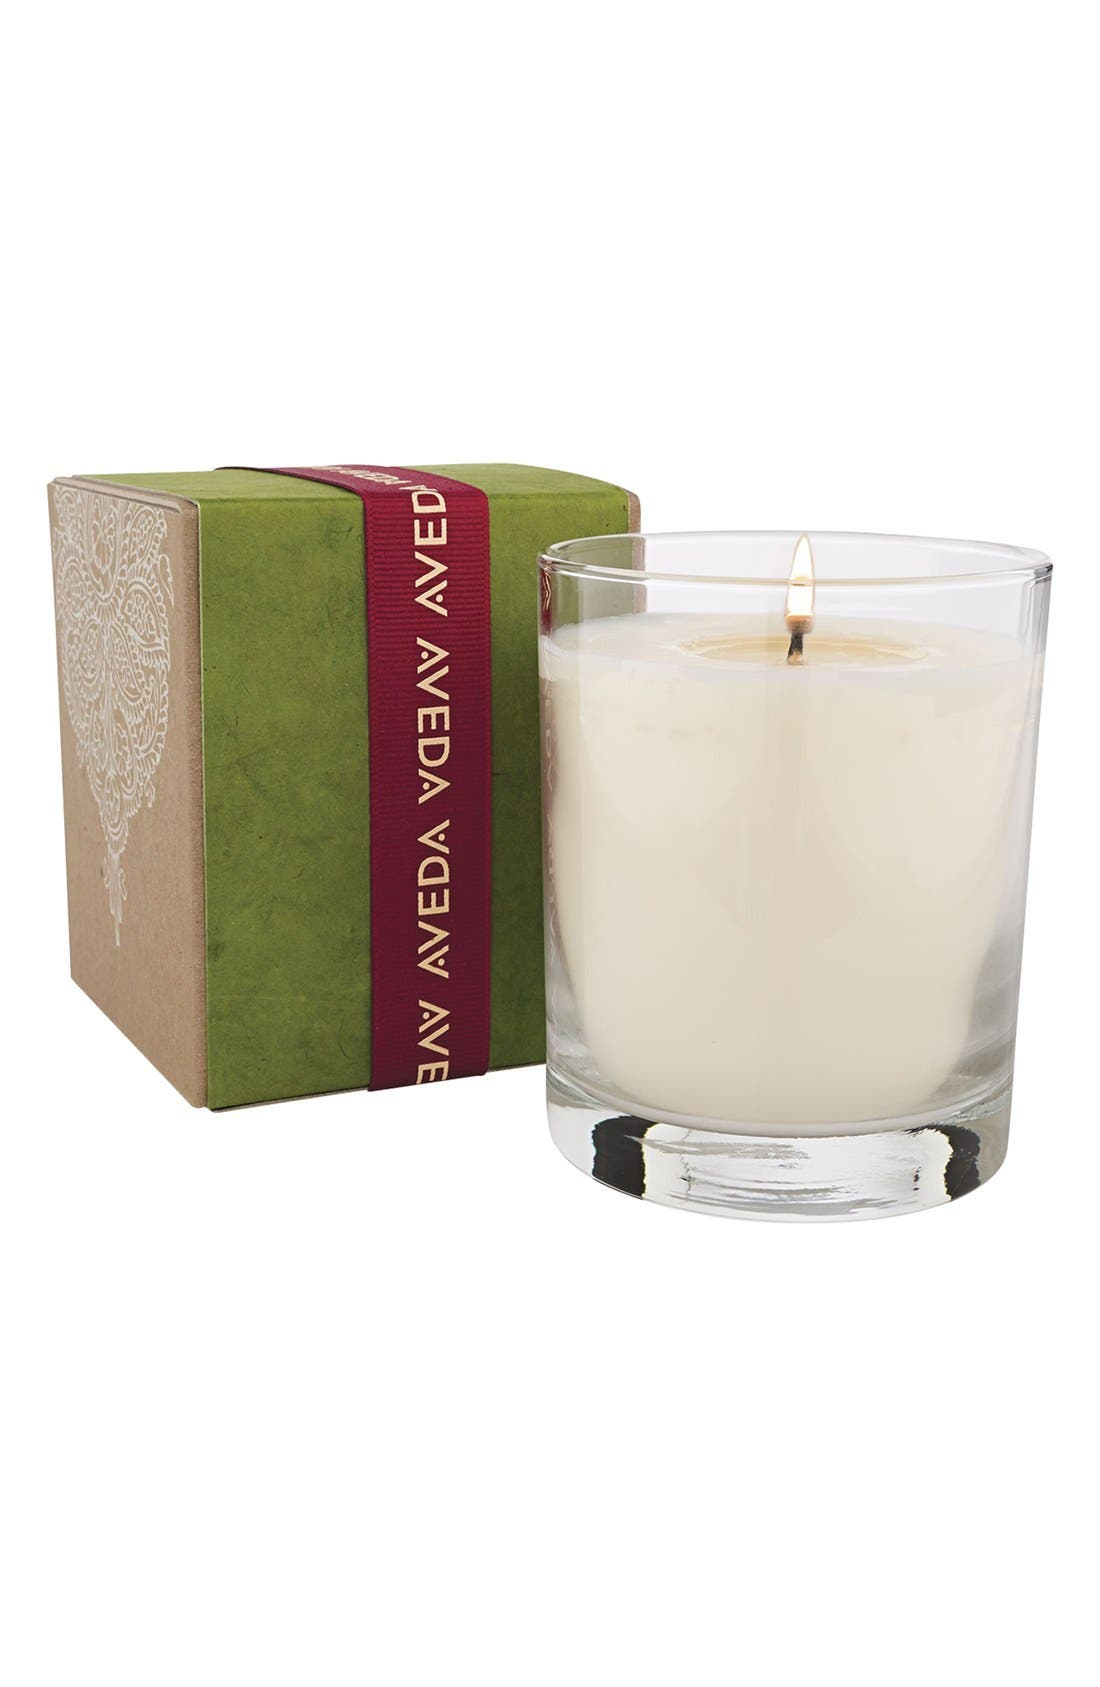 Alternate Image 1 Selected - Aveda 'Give Warmth' Candle